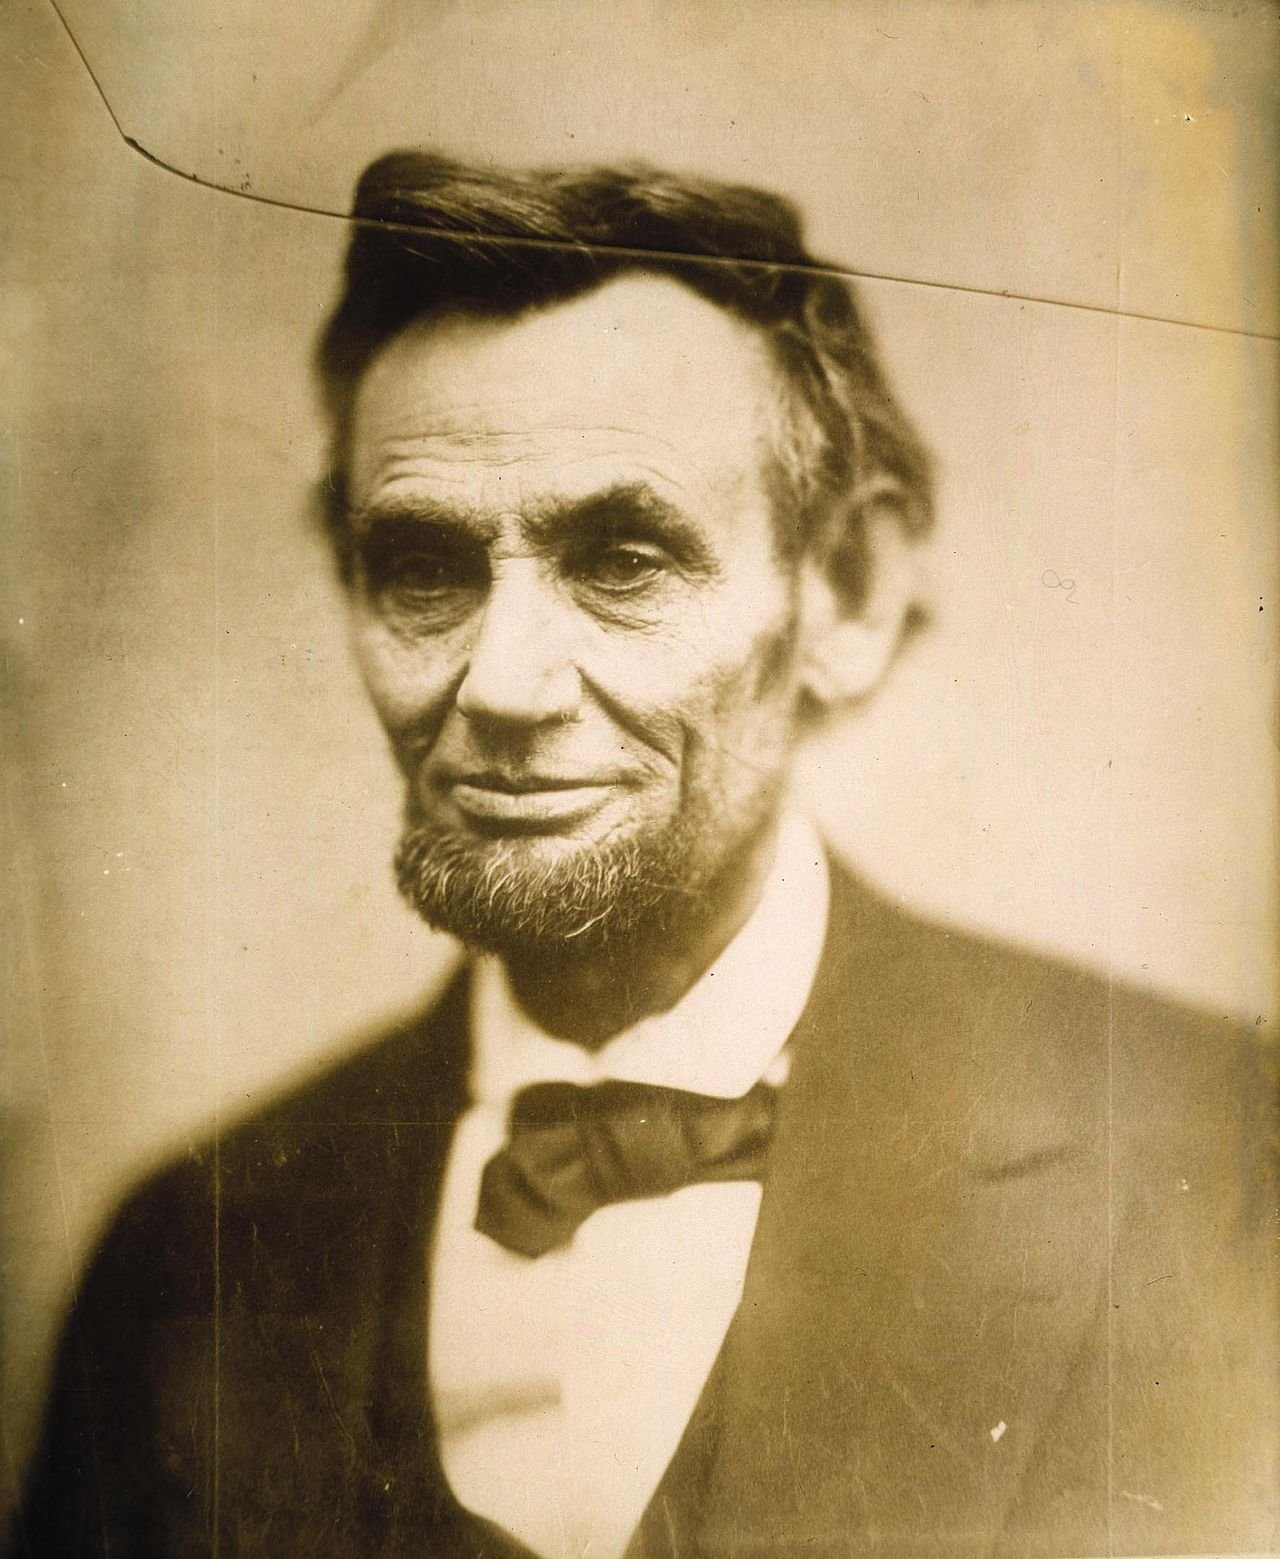 Abraham Lincoln was the first American president to have his image circulated through photography. In February 1865, Alexander Gardner captured this portrait, which was printed from a glass negative on light sensitive paper. It was the only print mad